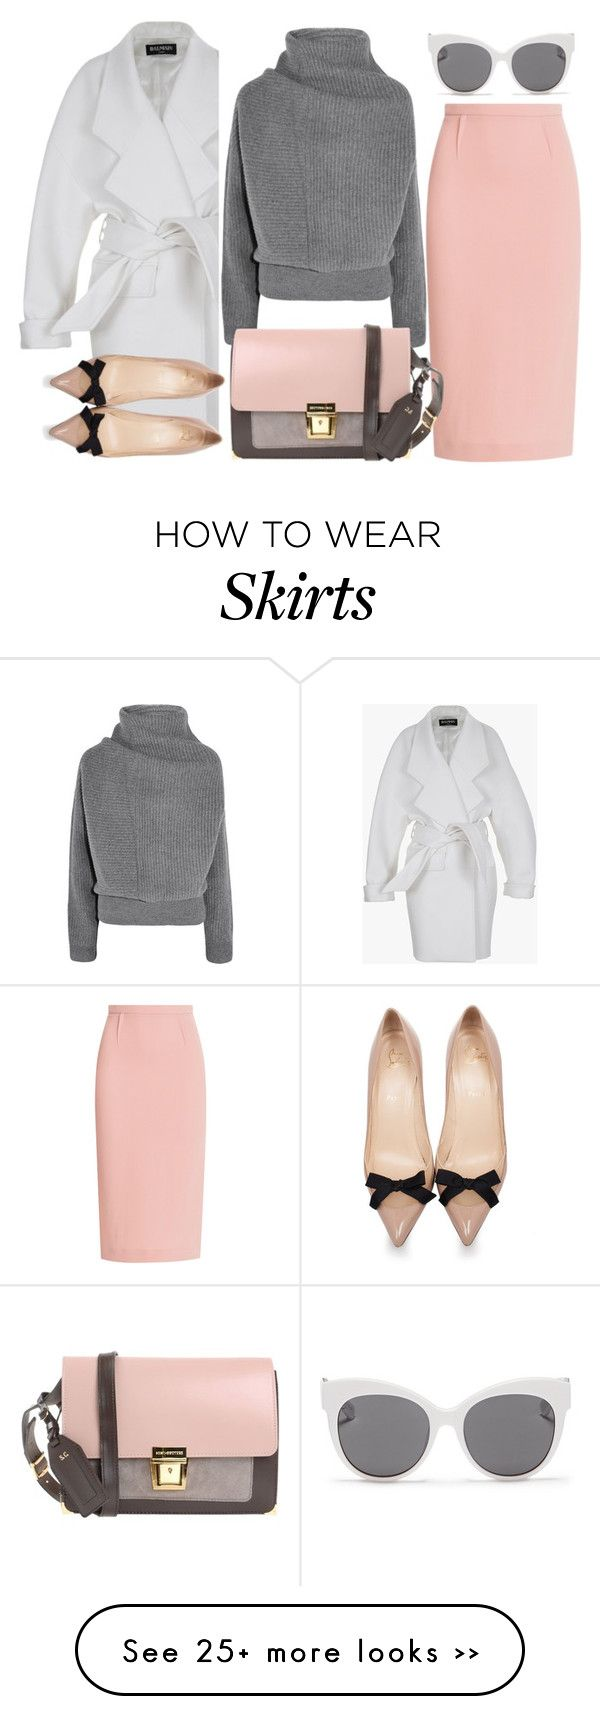 """#backtoschool"" by jiabao-krohn on Polyvore featuring Balmain, Acne Studios, Roland Mouret, Erika Cavallini Semi-Couture, Christian Louboutin, Blanc & Eclare and BackToSchool"